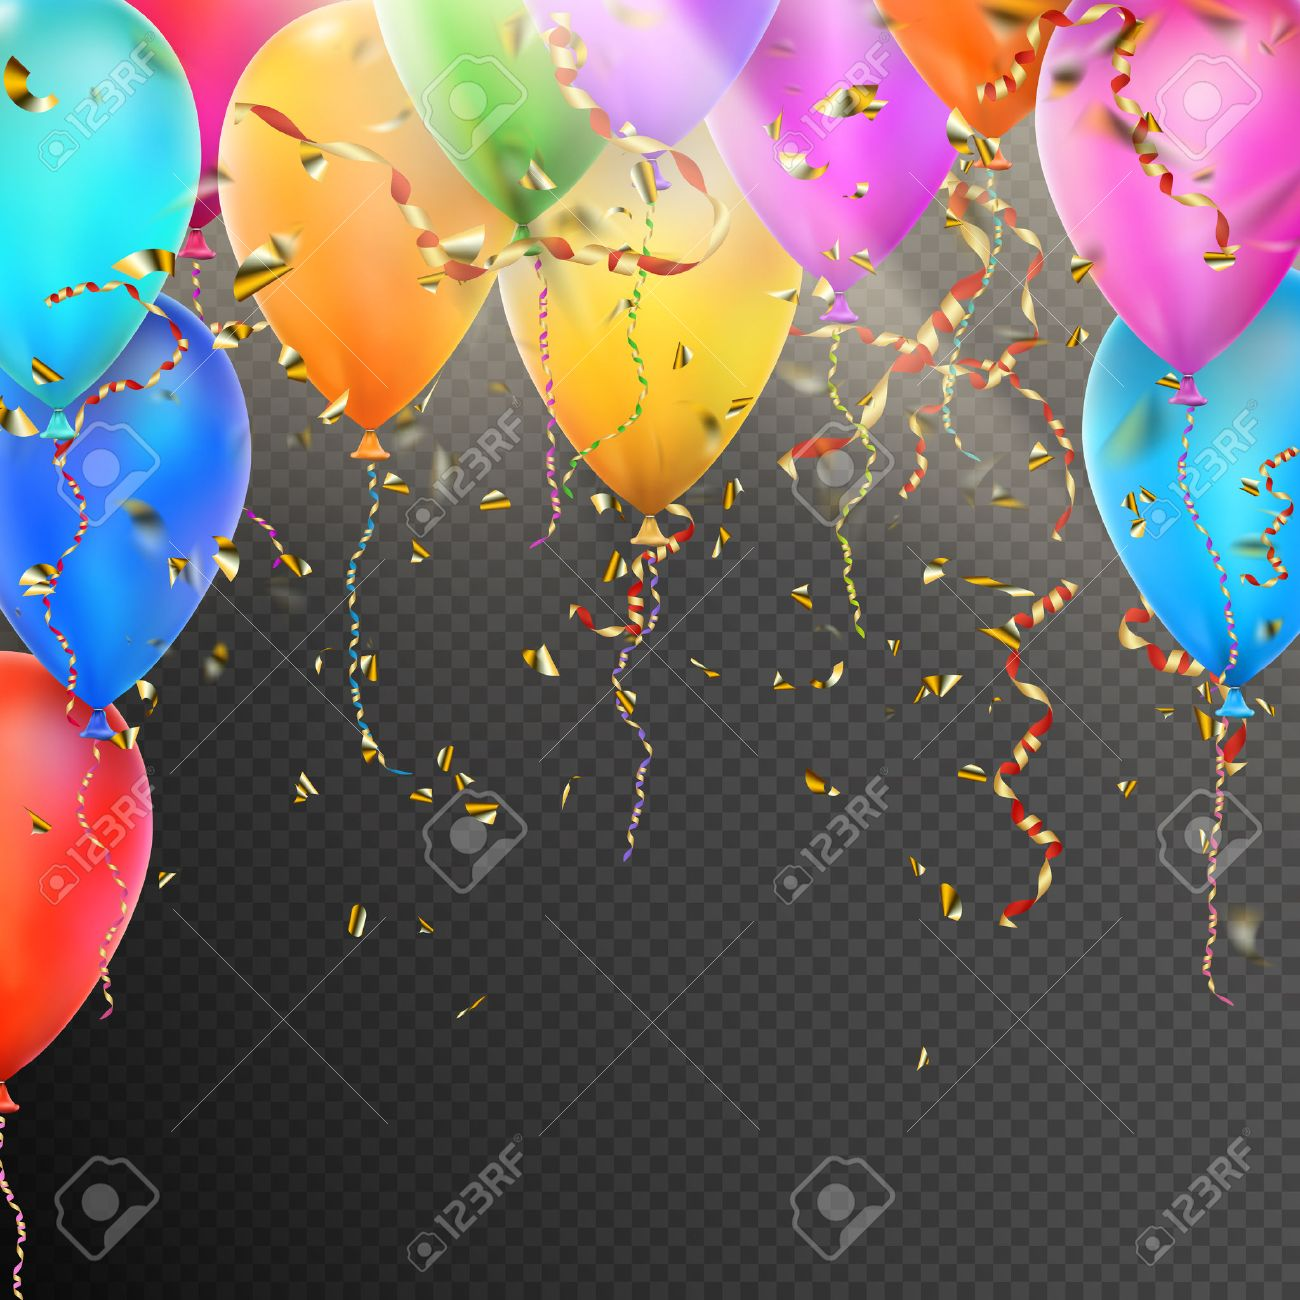 Celebration background template with balloons, confetti and red gold ribbons on transparent background. vector file included - 58155784